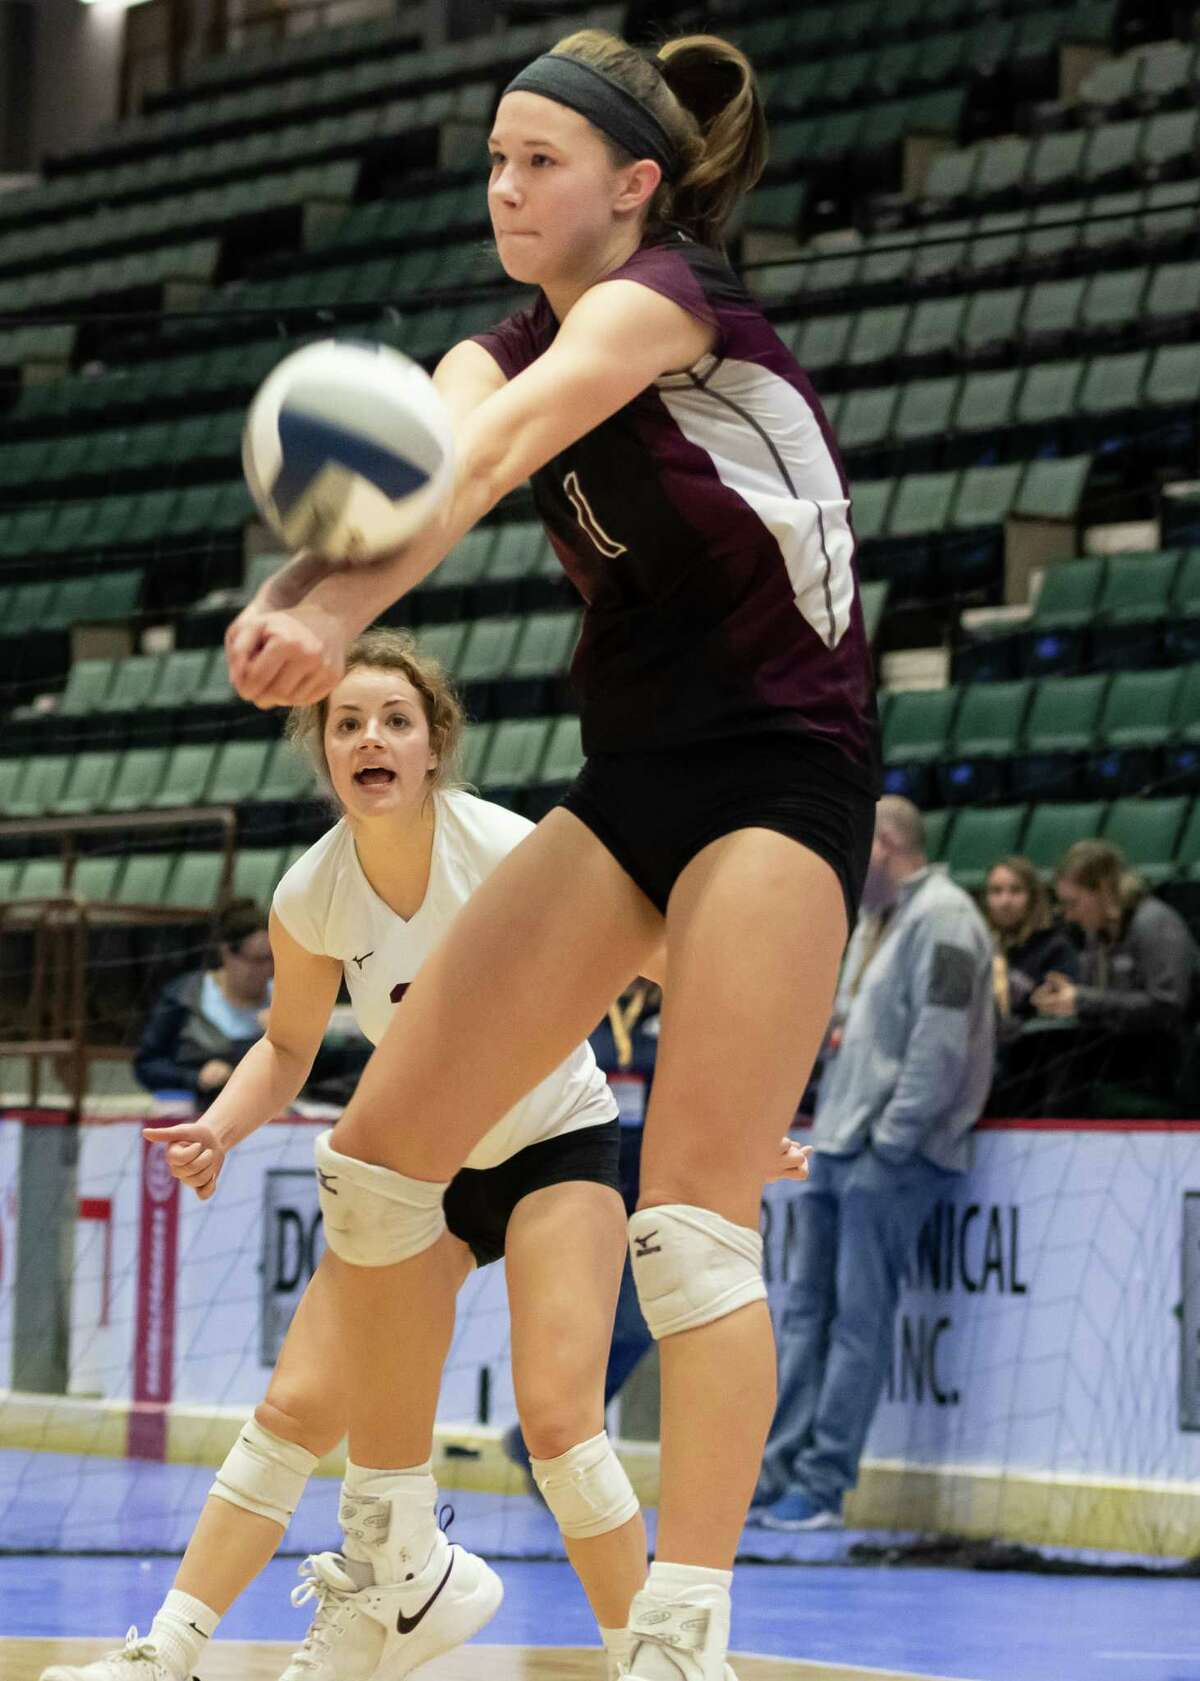 Burnt Hills' Carlie Rzeszotarski led her team to a state championship in 2019, and to a 20-0 record in this year's delayed and condensed season. She earned Gatorade Player of the Year honors for New York. (Jenn March, Special to the Times Union)